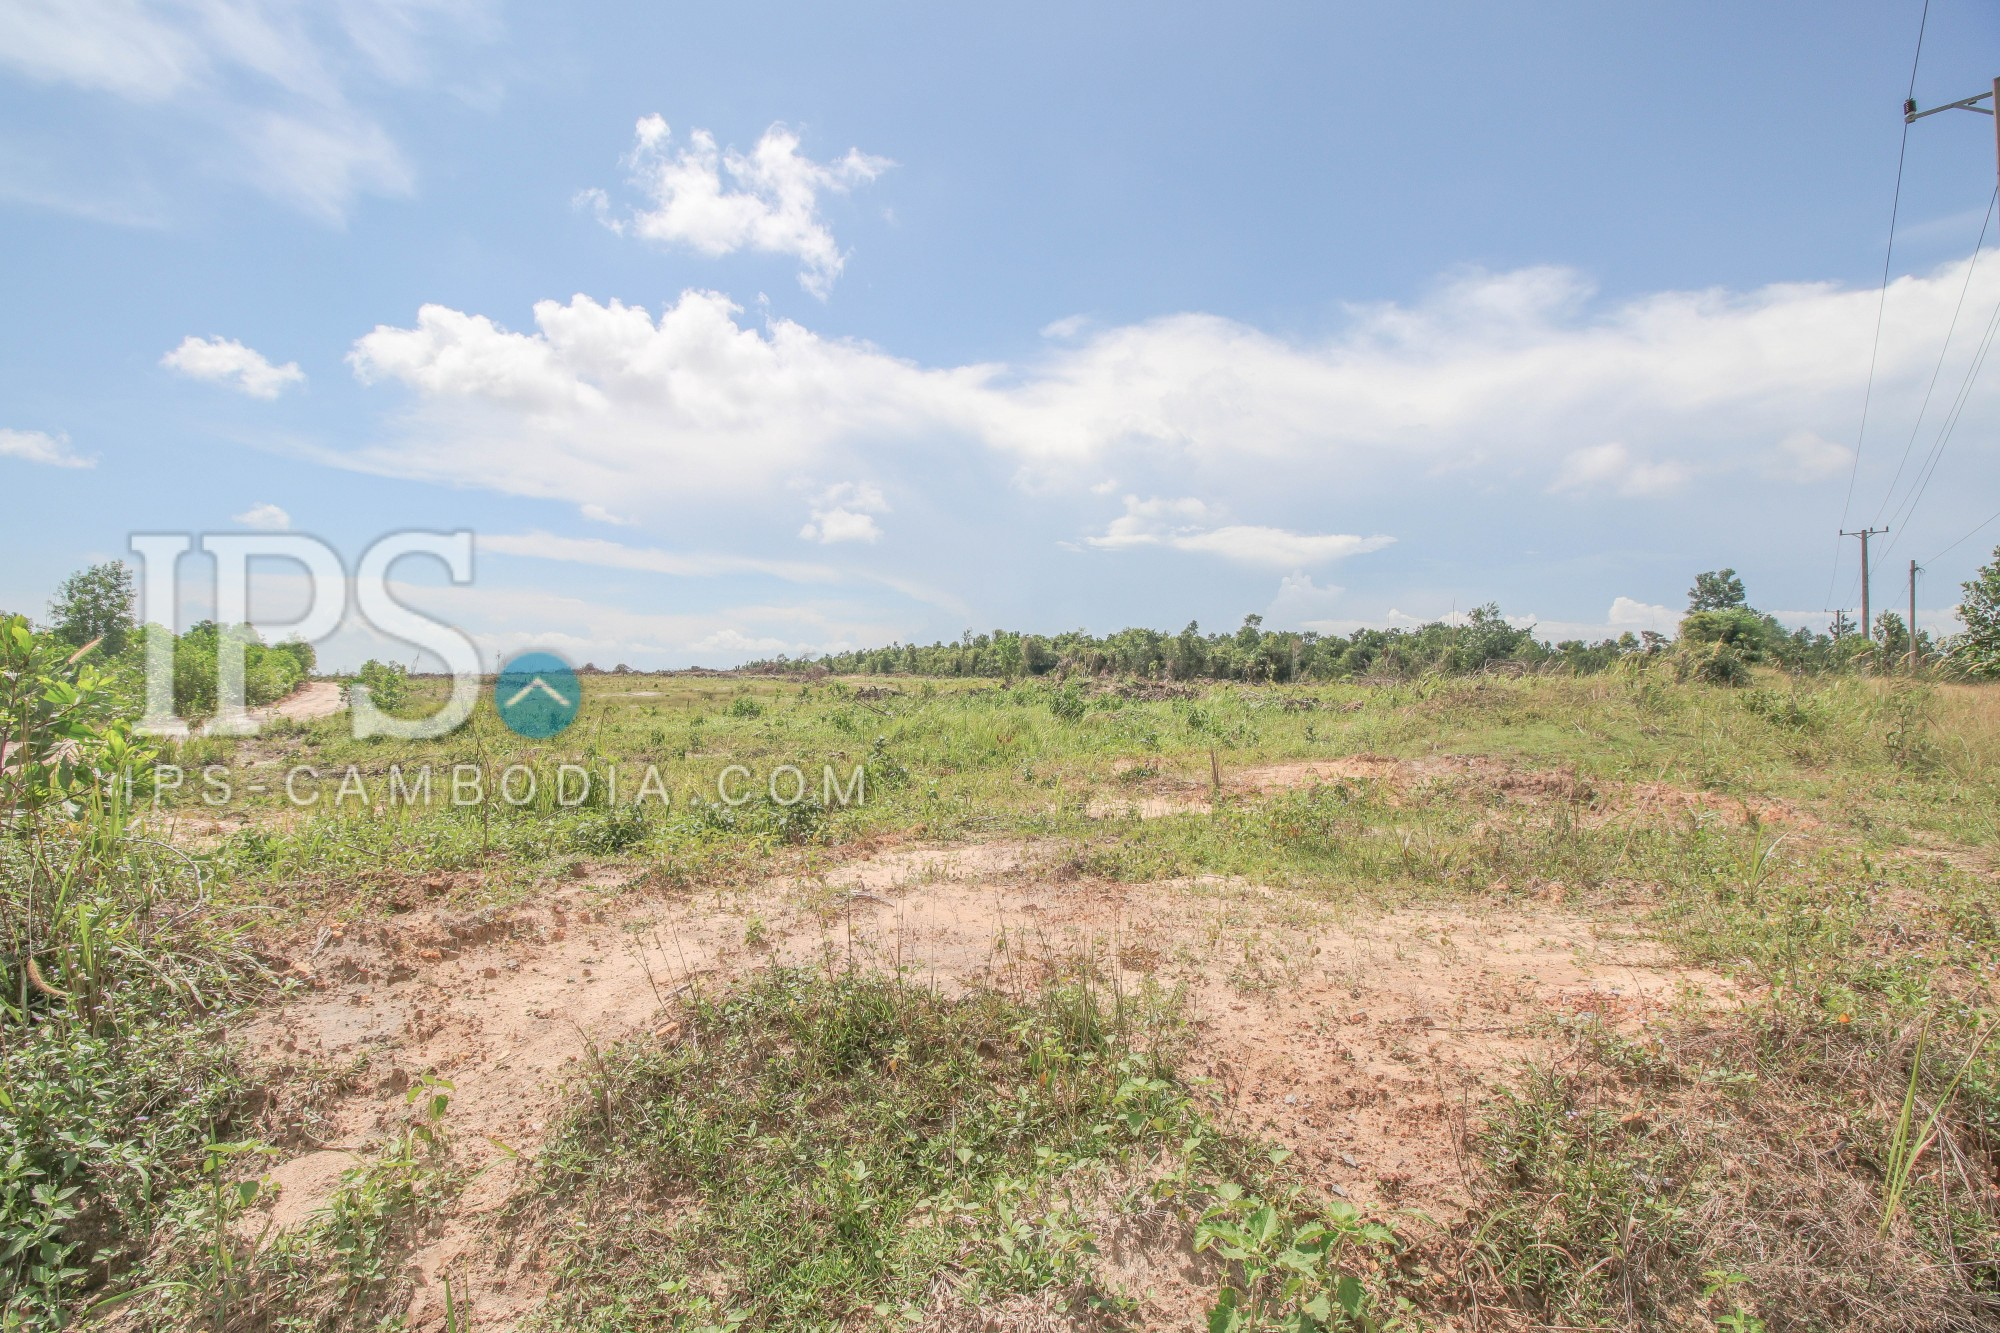 Apartments For Sale In Sihanoukville Cambodia